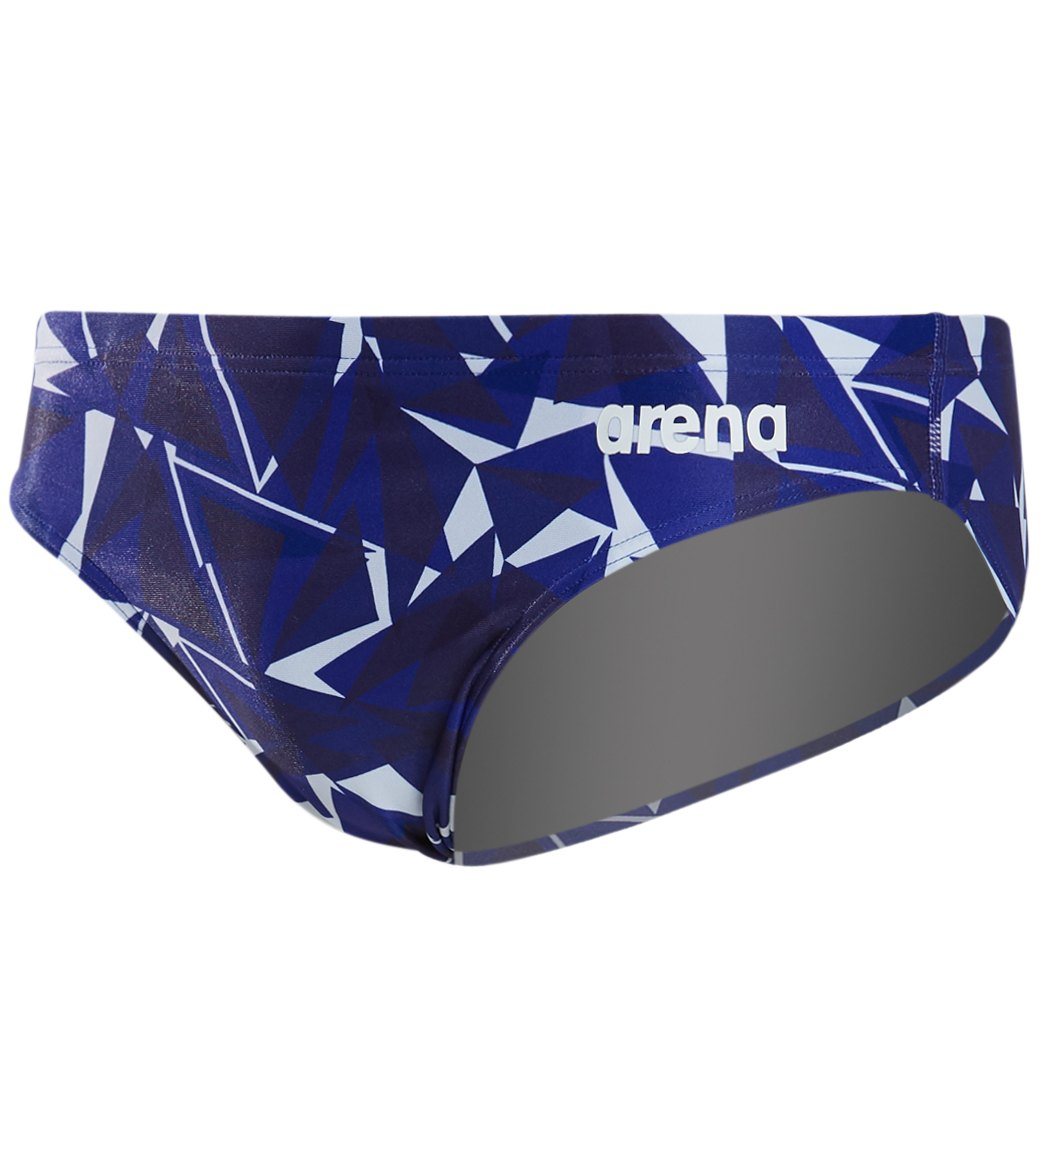 2cad08e1e1 Arena Men's Shattered Glass MaxLife Brief Swimsuit at SwimOutlet.com